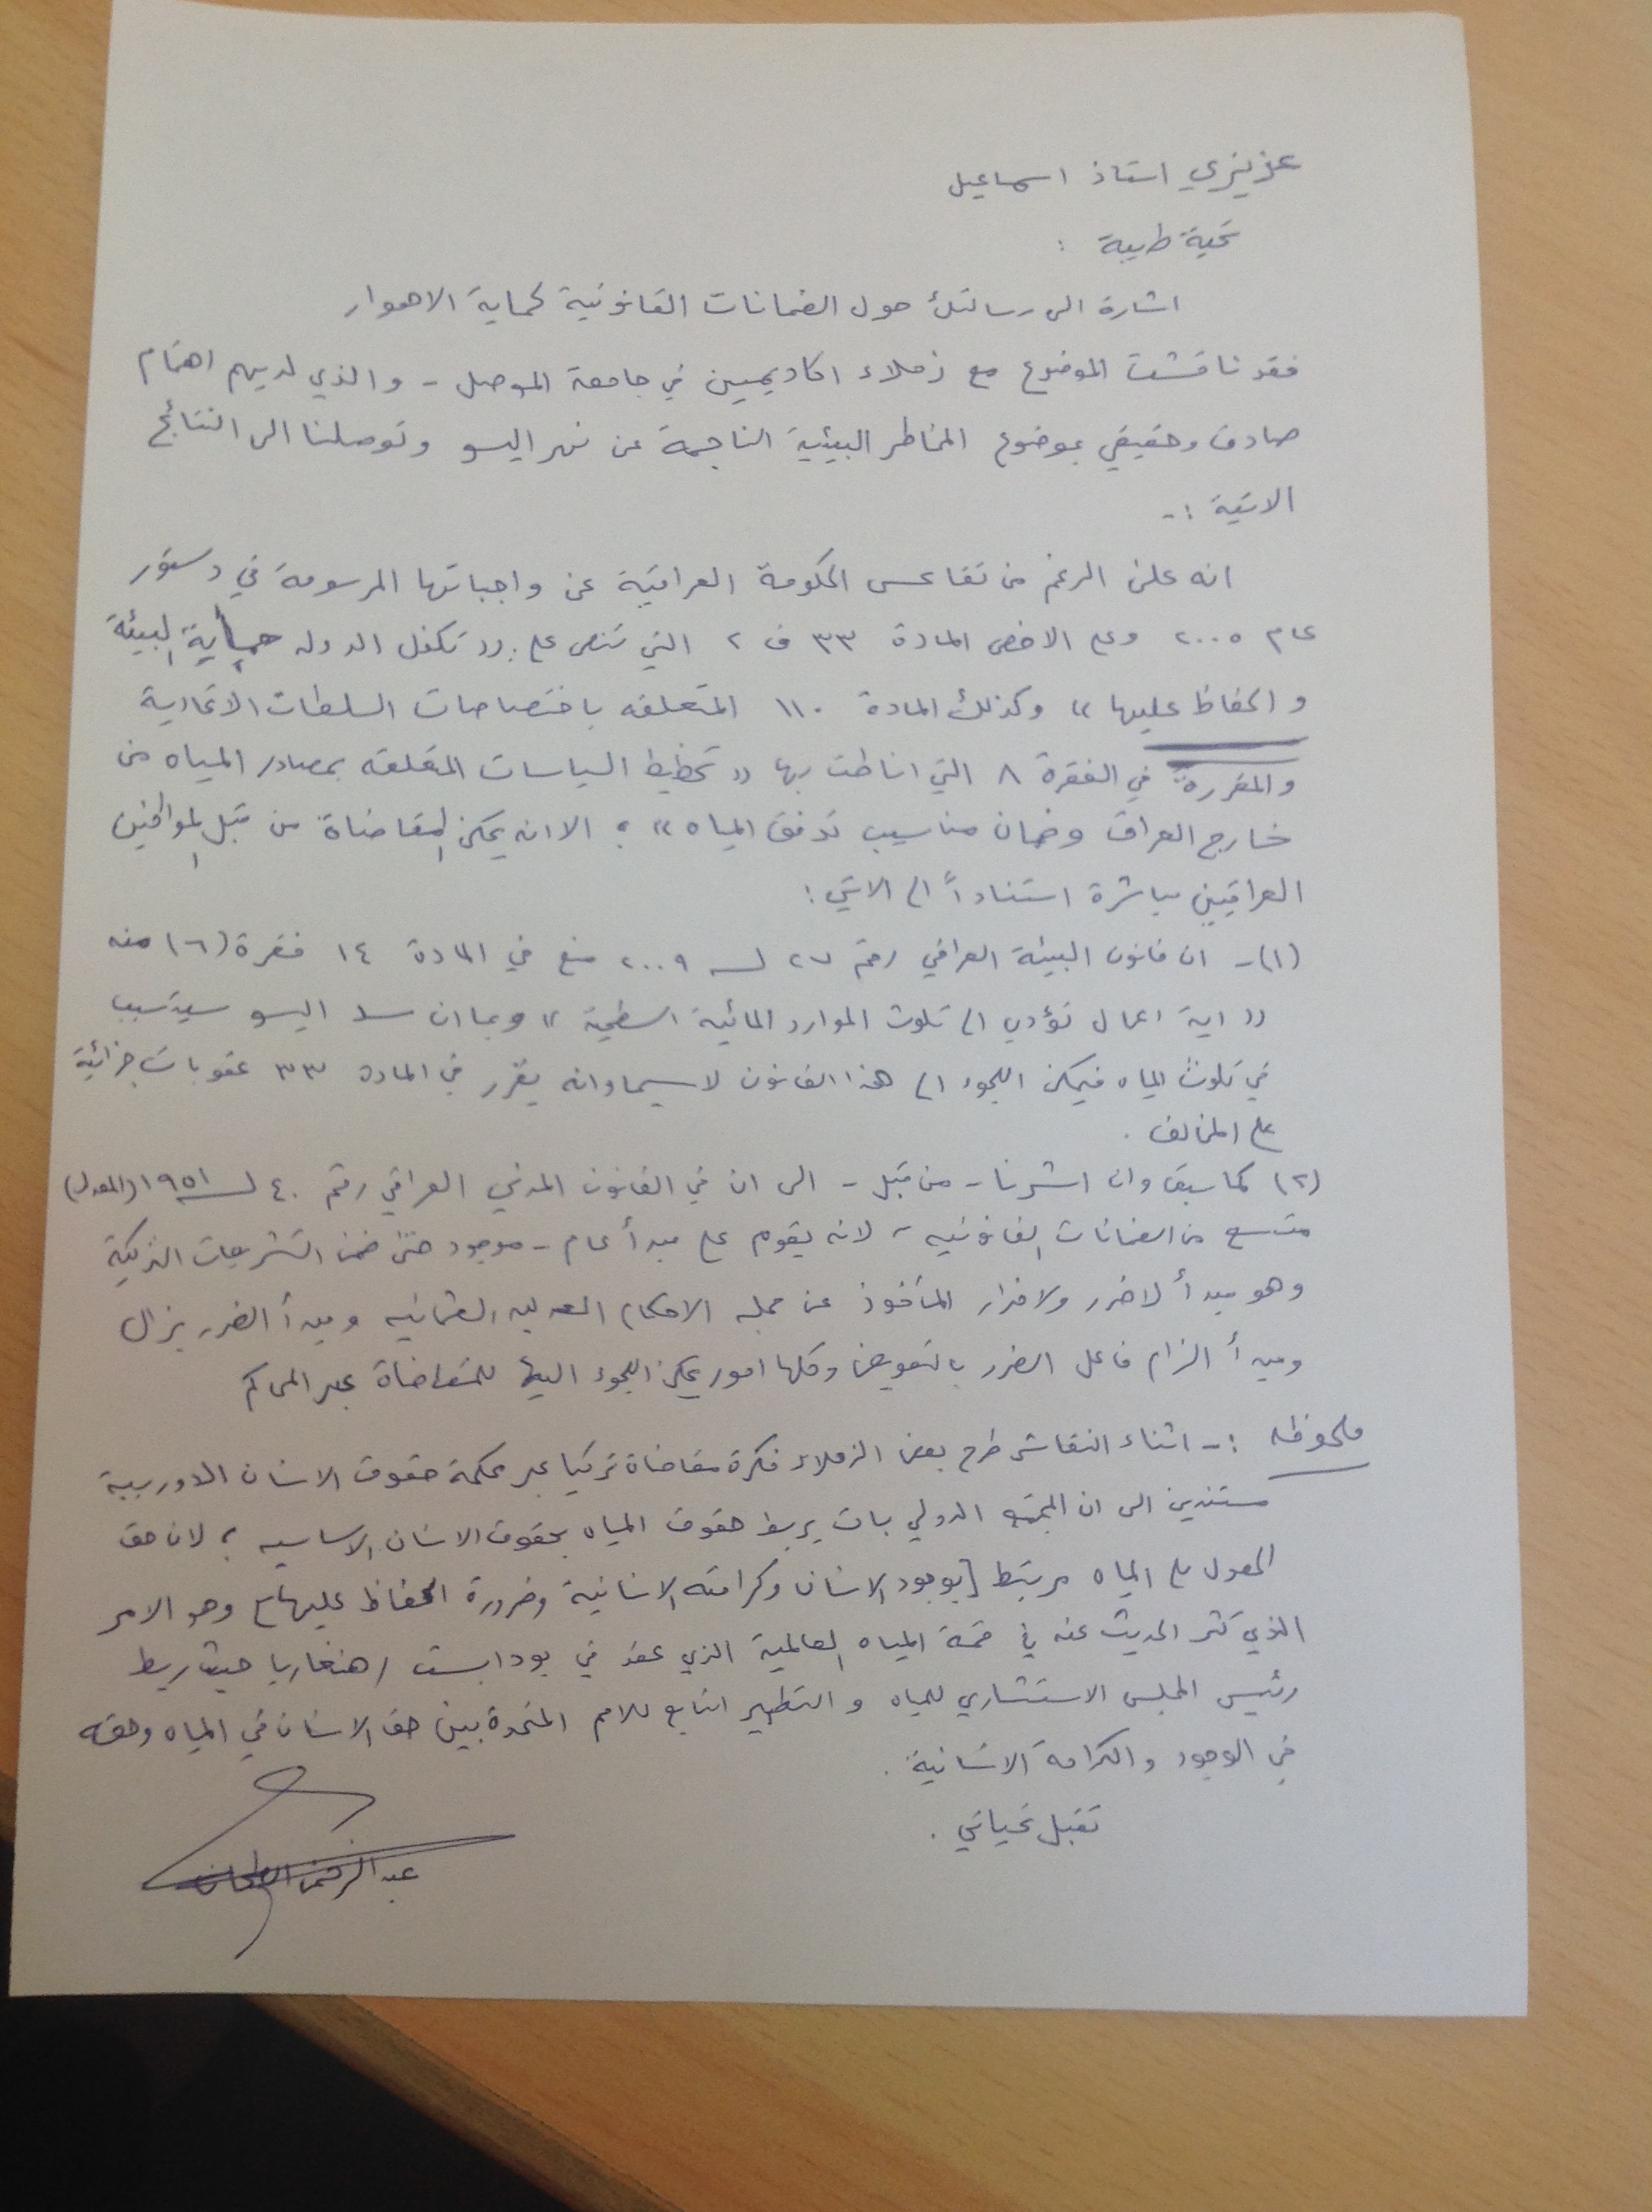 Letter from Dr. Abdul Rahman Al Tahan about the legal position of Ilisu Dam construction